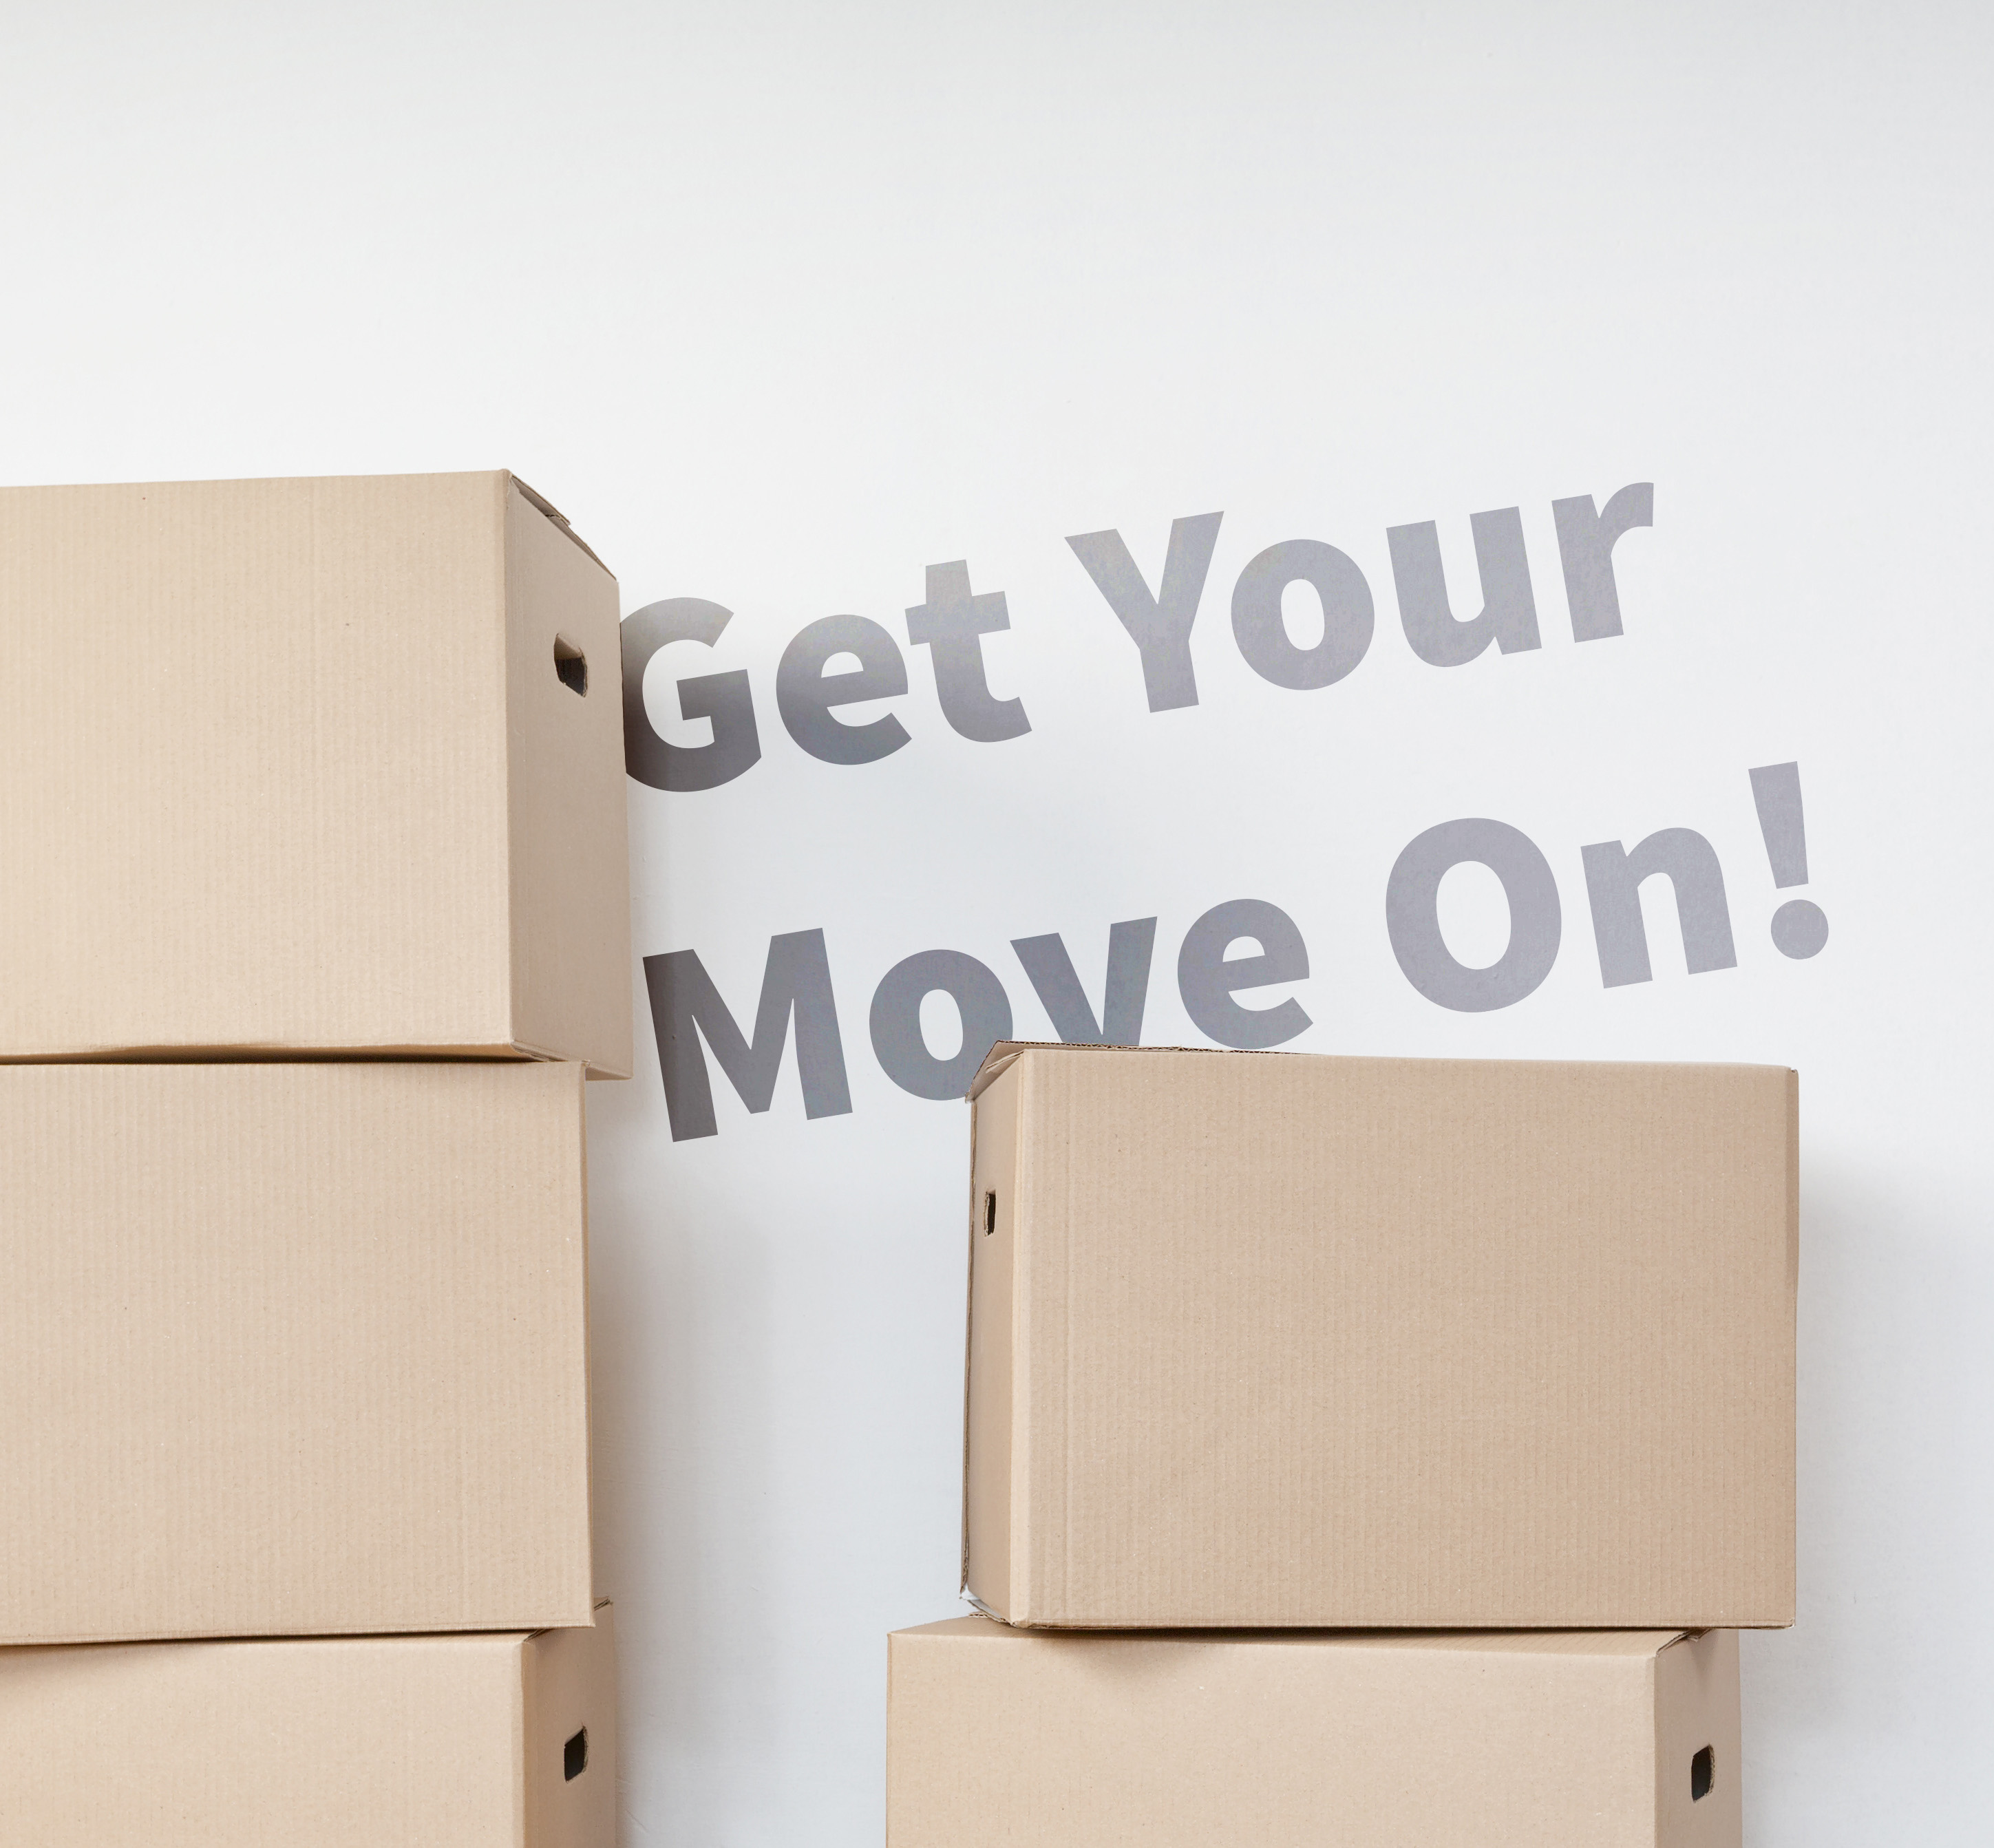 Get your move on blog.jpg